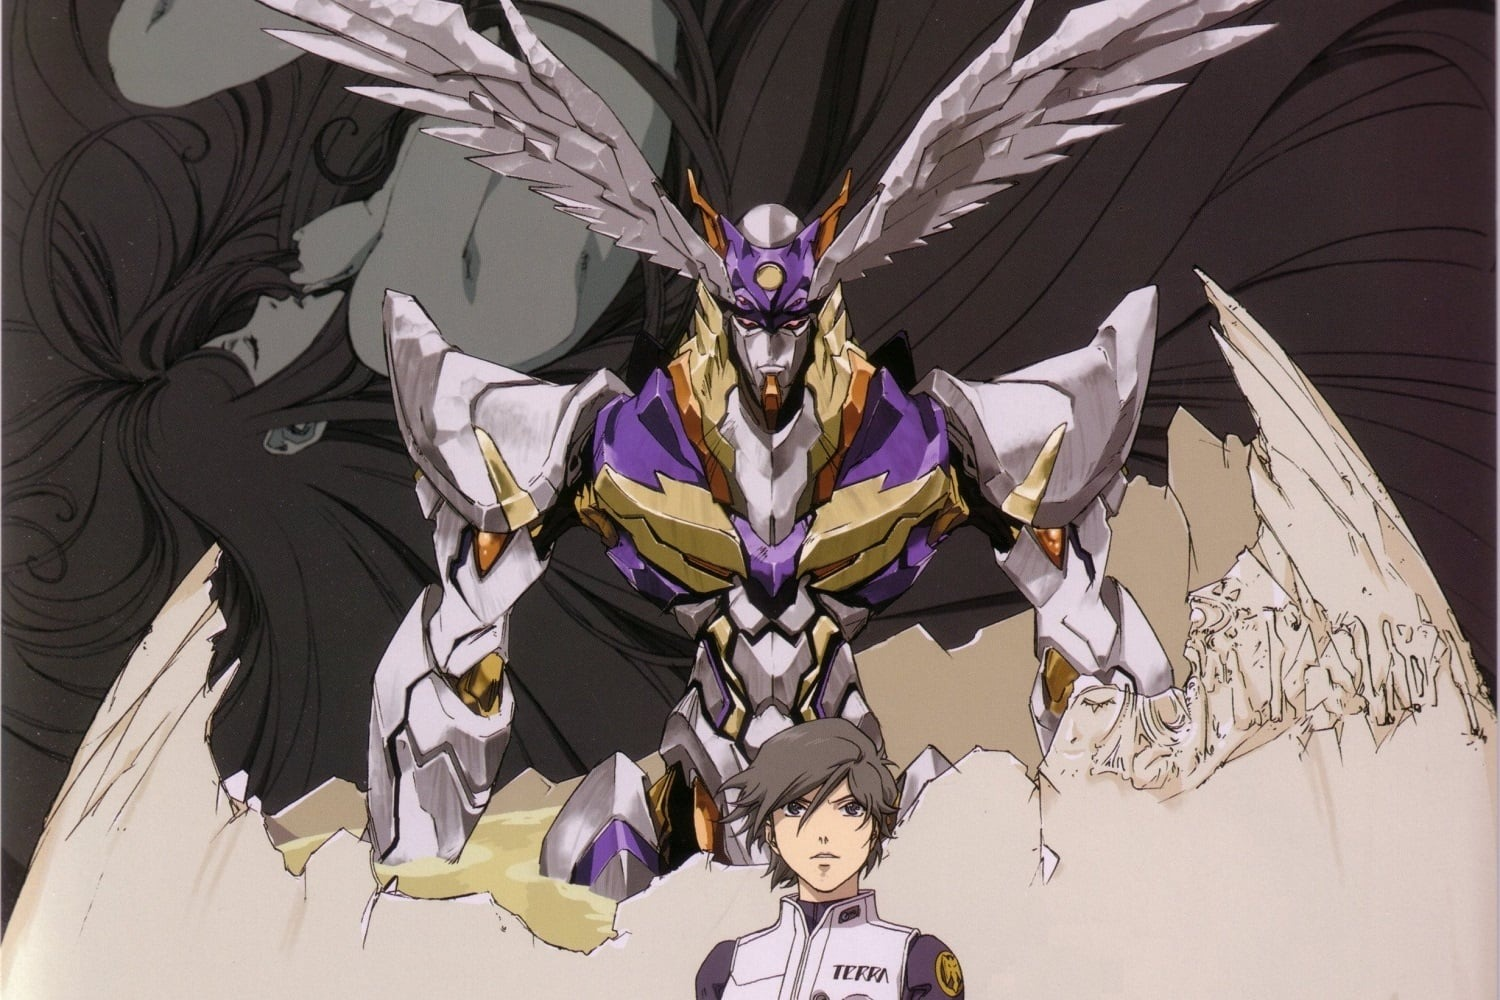 Sing, Rahxephon, sing your own song, your forbidden song!